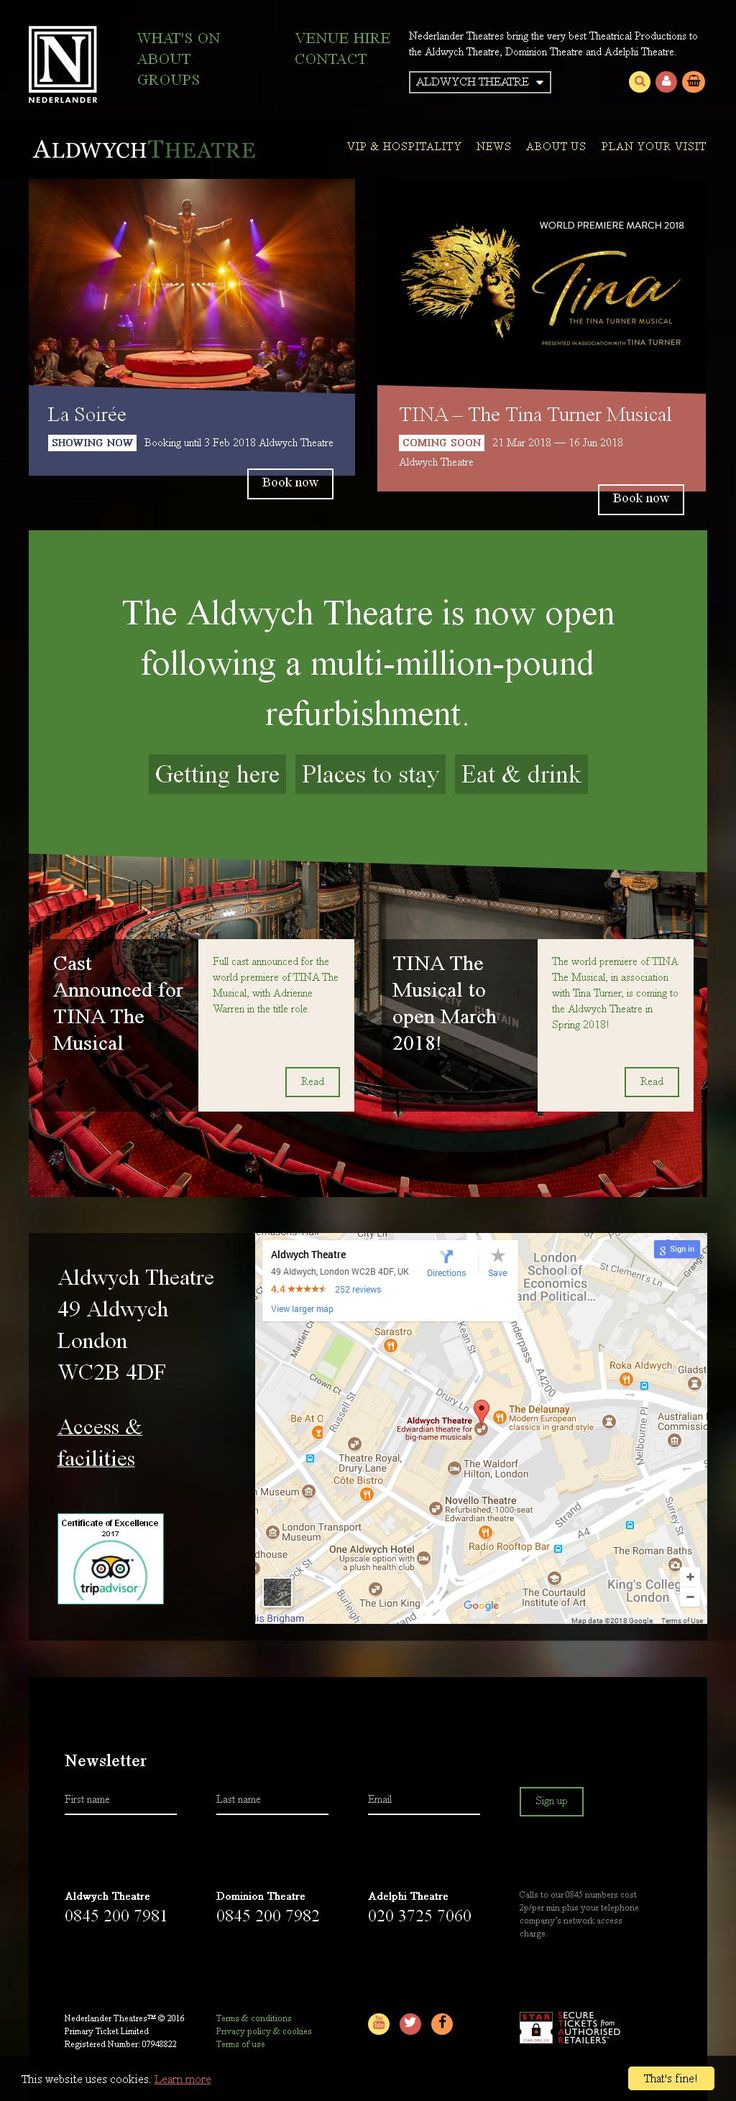 Aldwych Theatre Theatres 49 Aldwych   London London WC2B 4DF   To get more infomration about Aldwych Theatre, Location Map, Phone numbers, Email, Website please visit http://www.HaiUK.co.uk